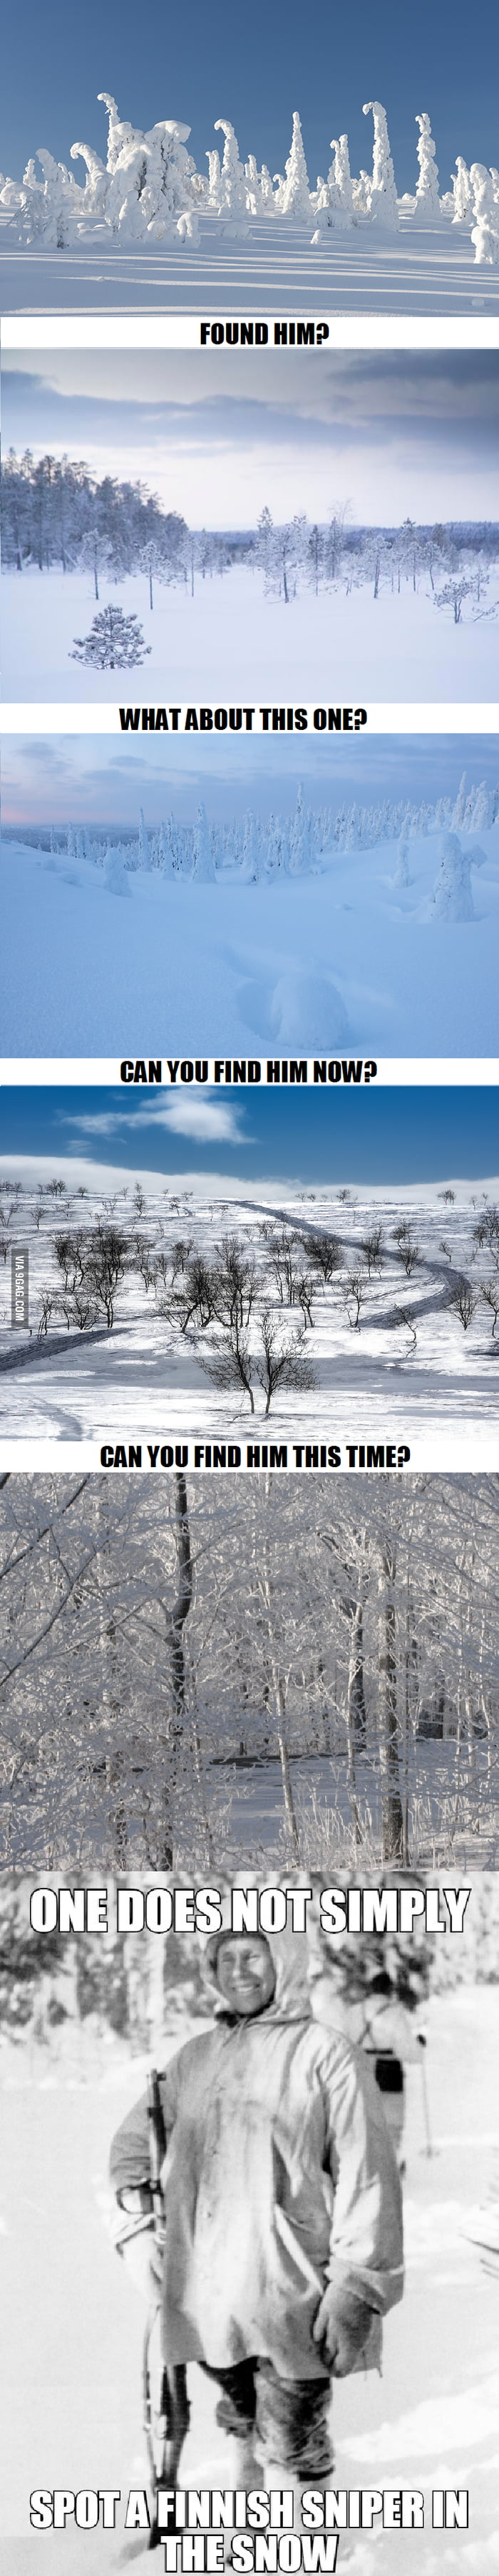 Can you find the Finnish sniper?